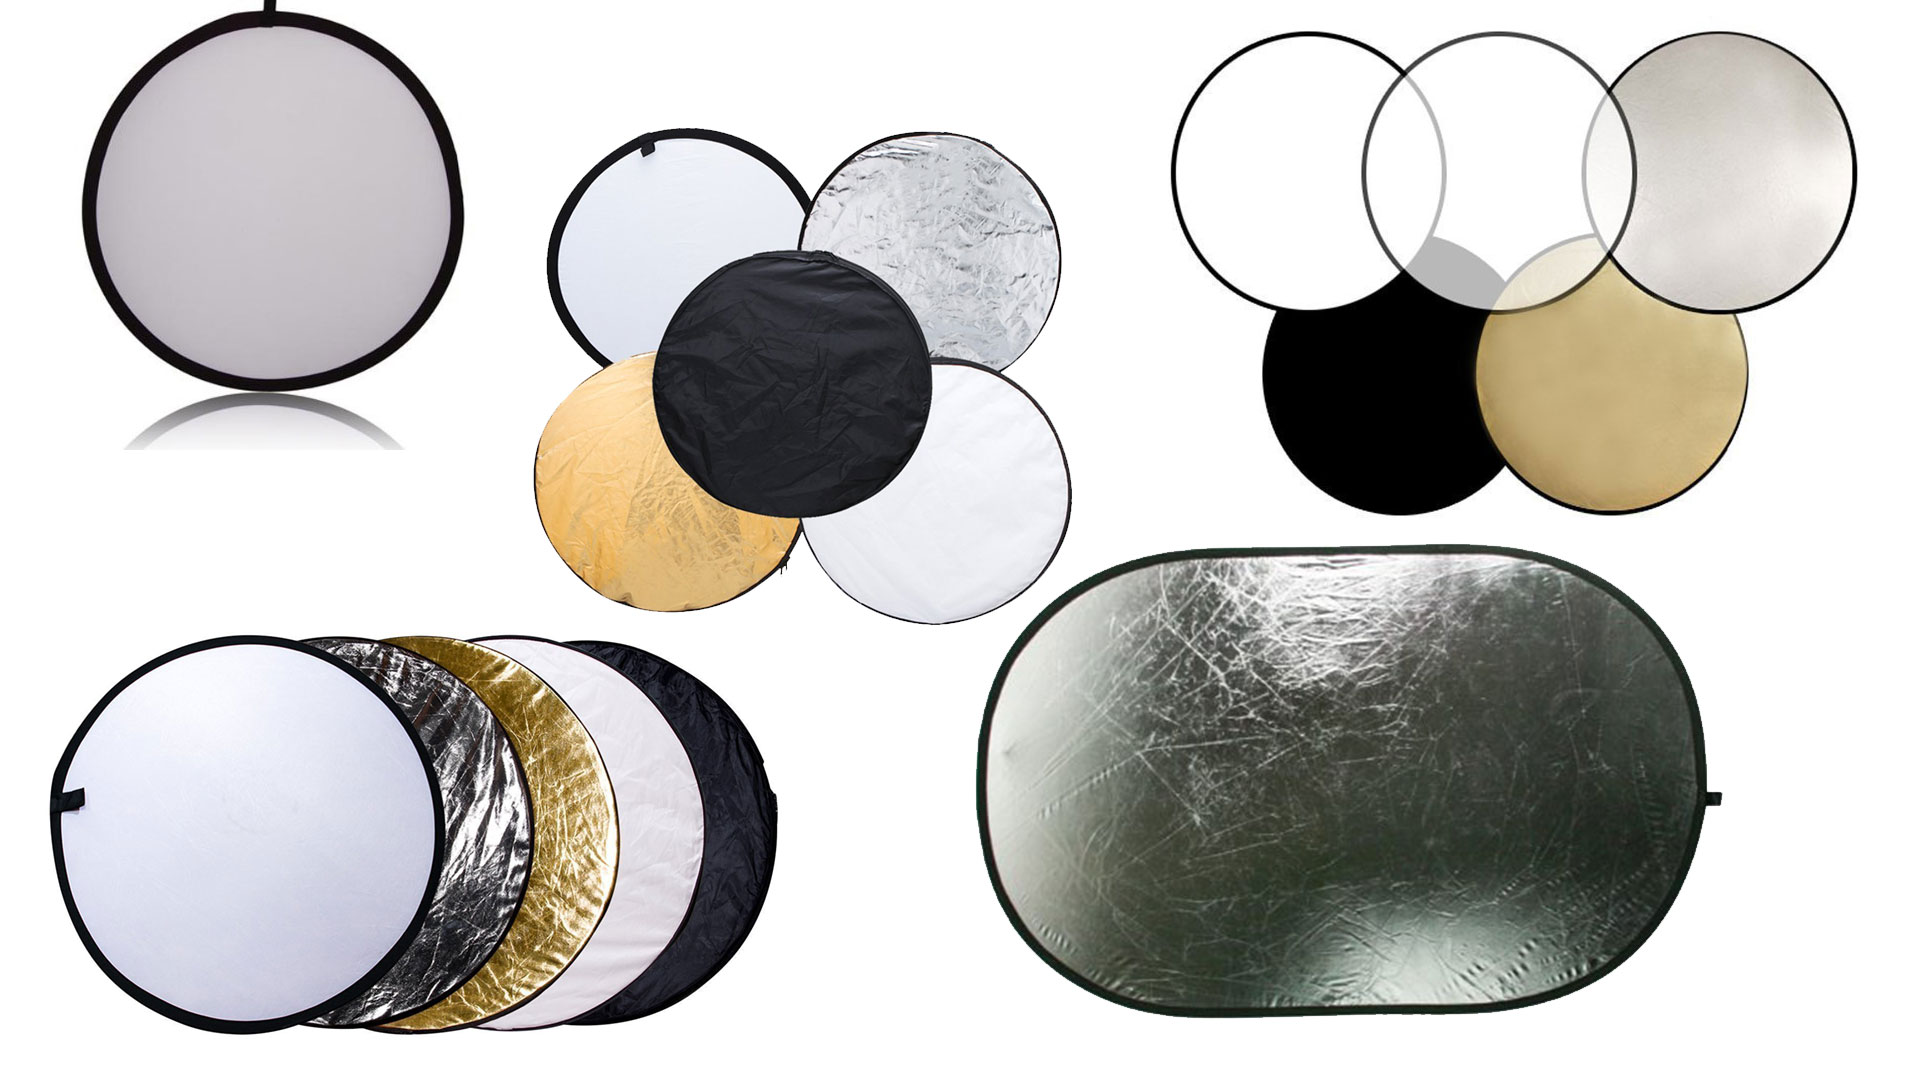 5-in-1 24 Photographic reflector Portable Handle Round Reflector Collapsible Multi Disc with Carrying Case for Photography Photo Studio Lighting